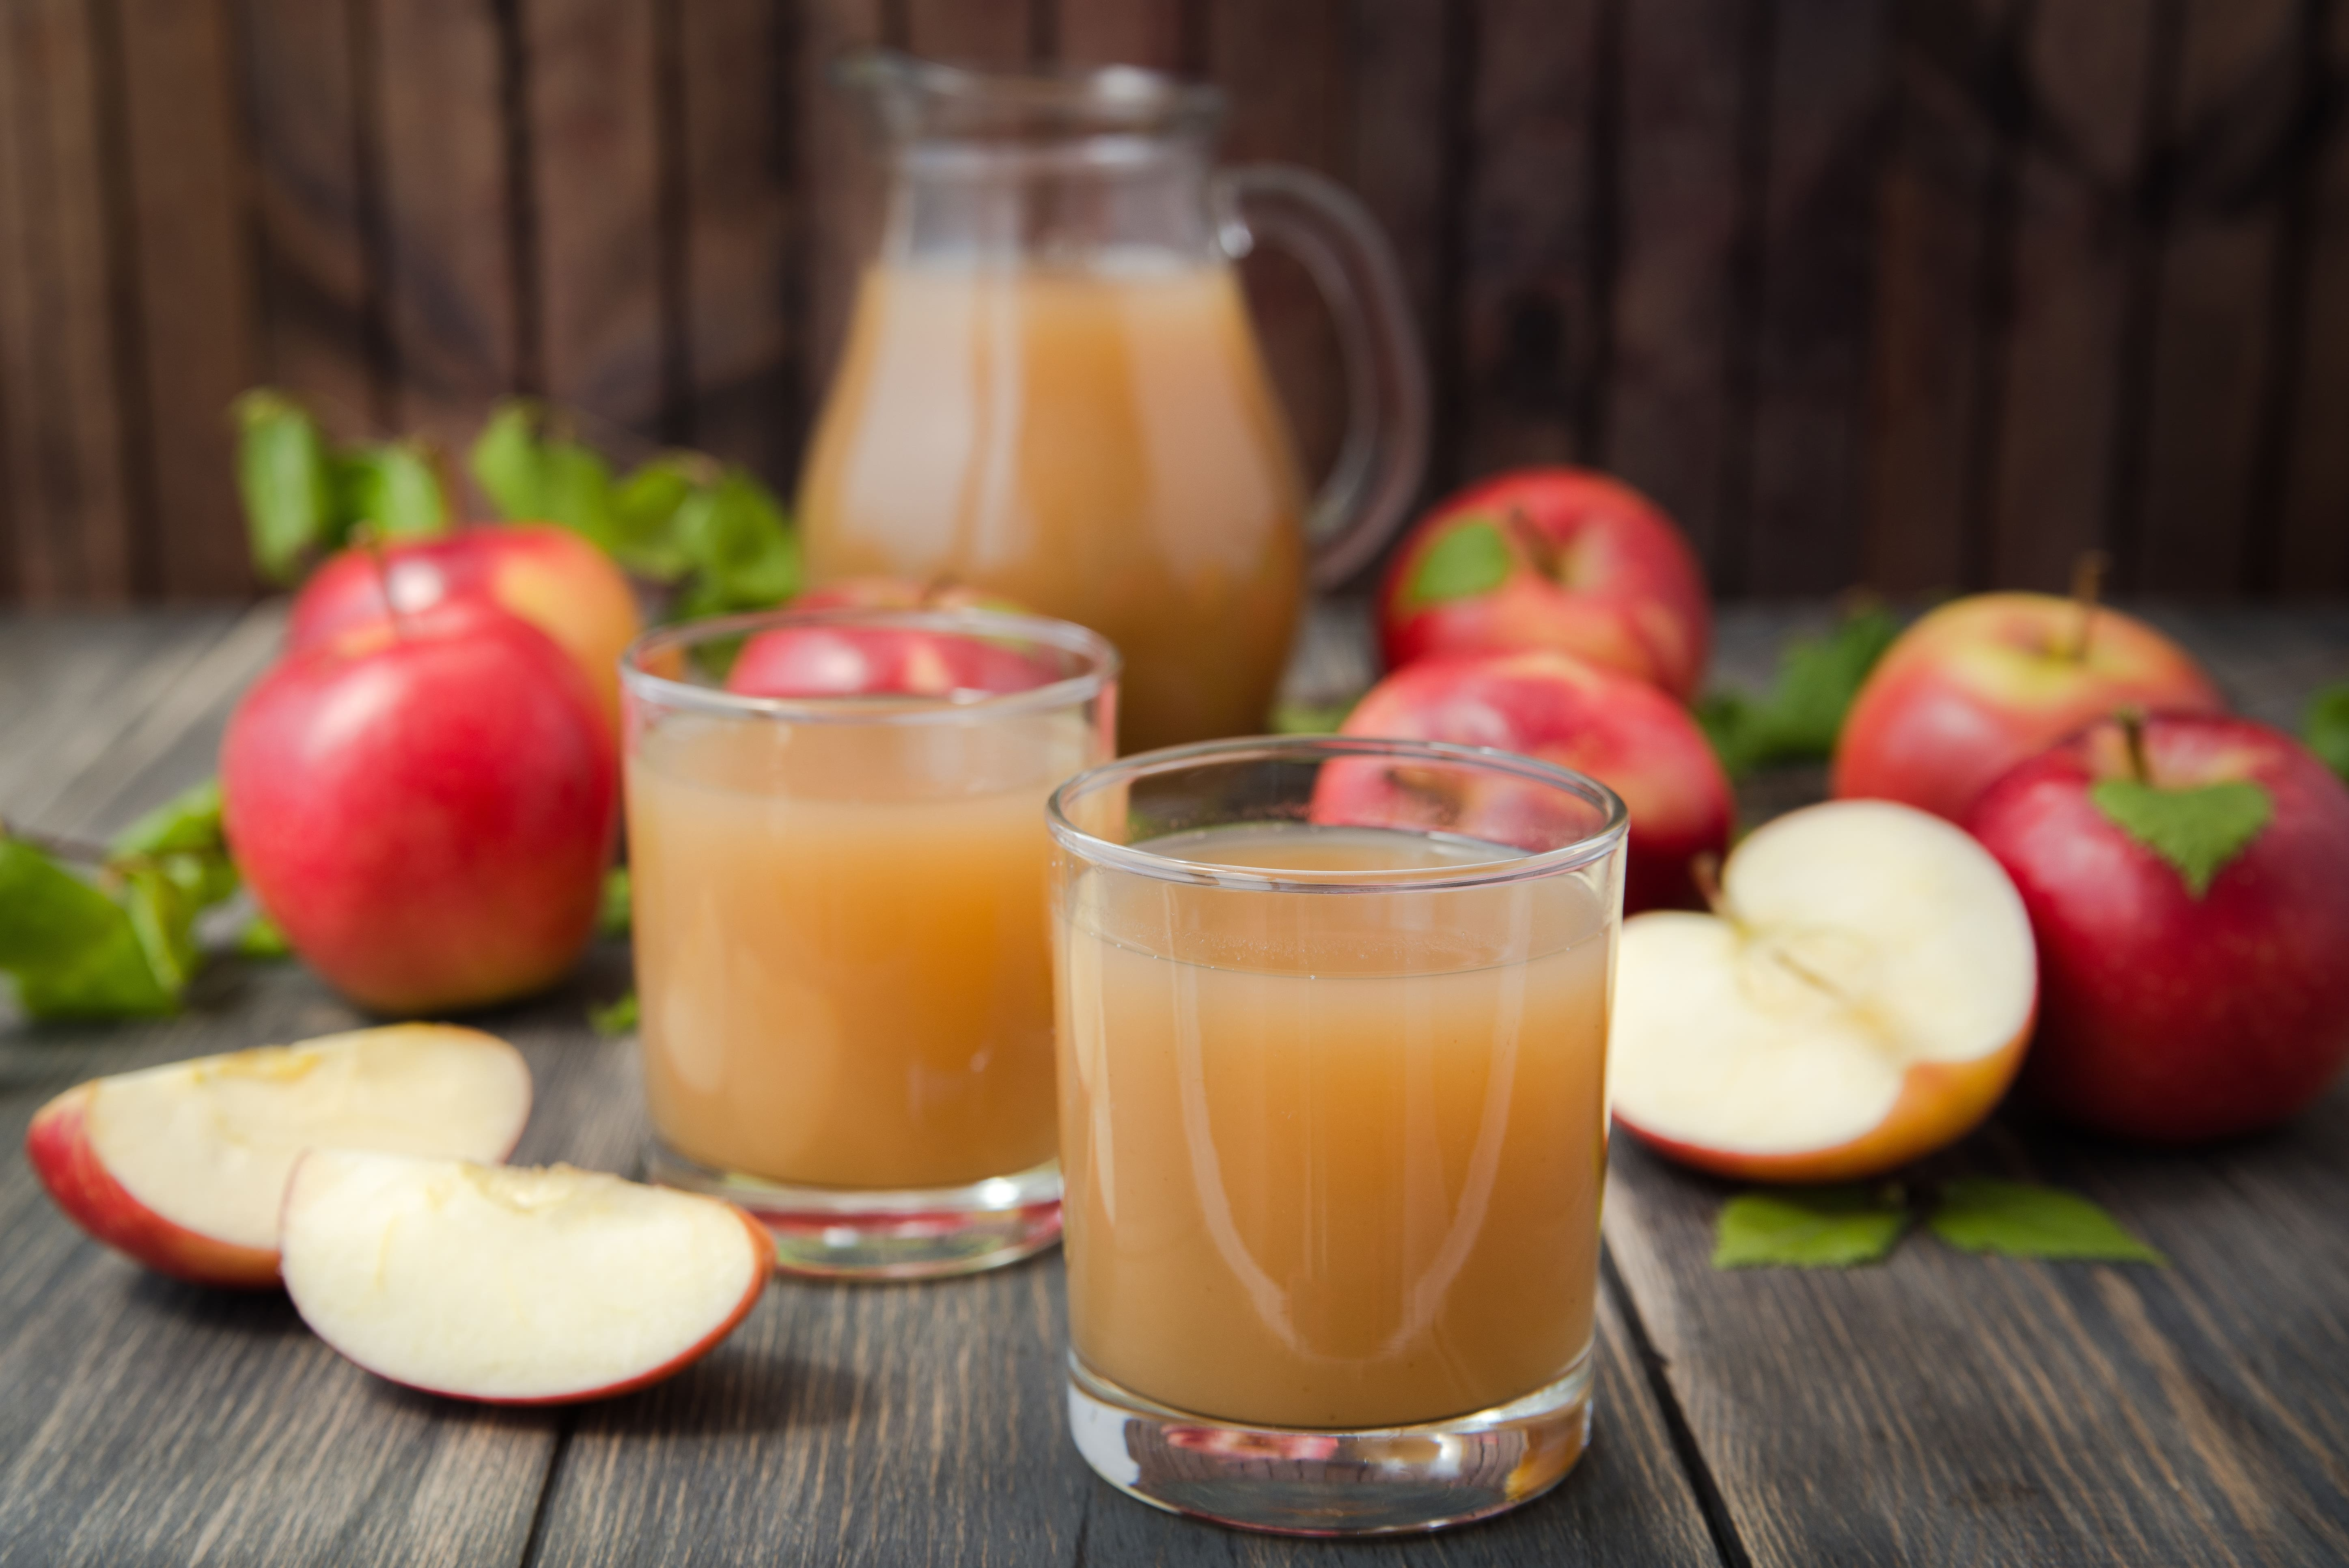 7 Wonderful Reasons to Eat Apples Every Single Day